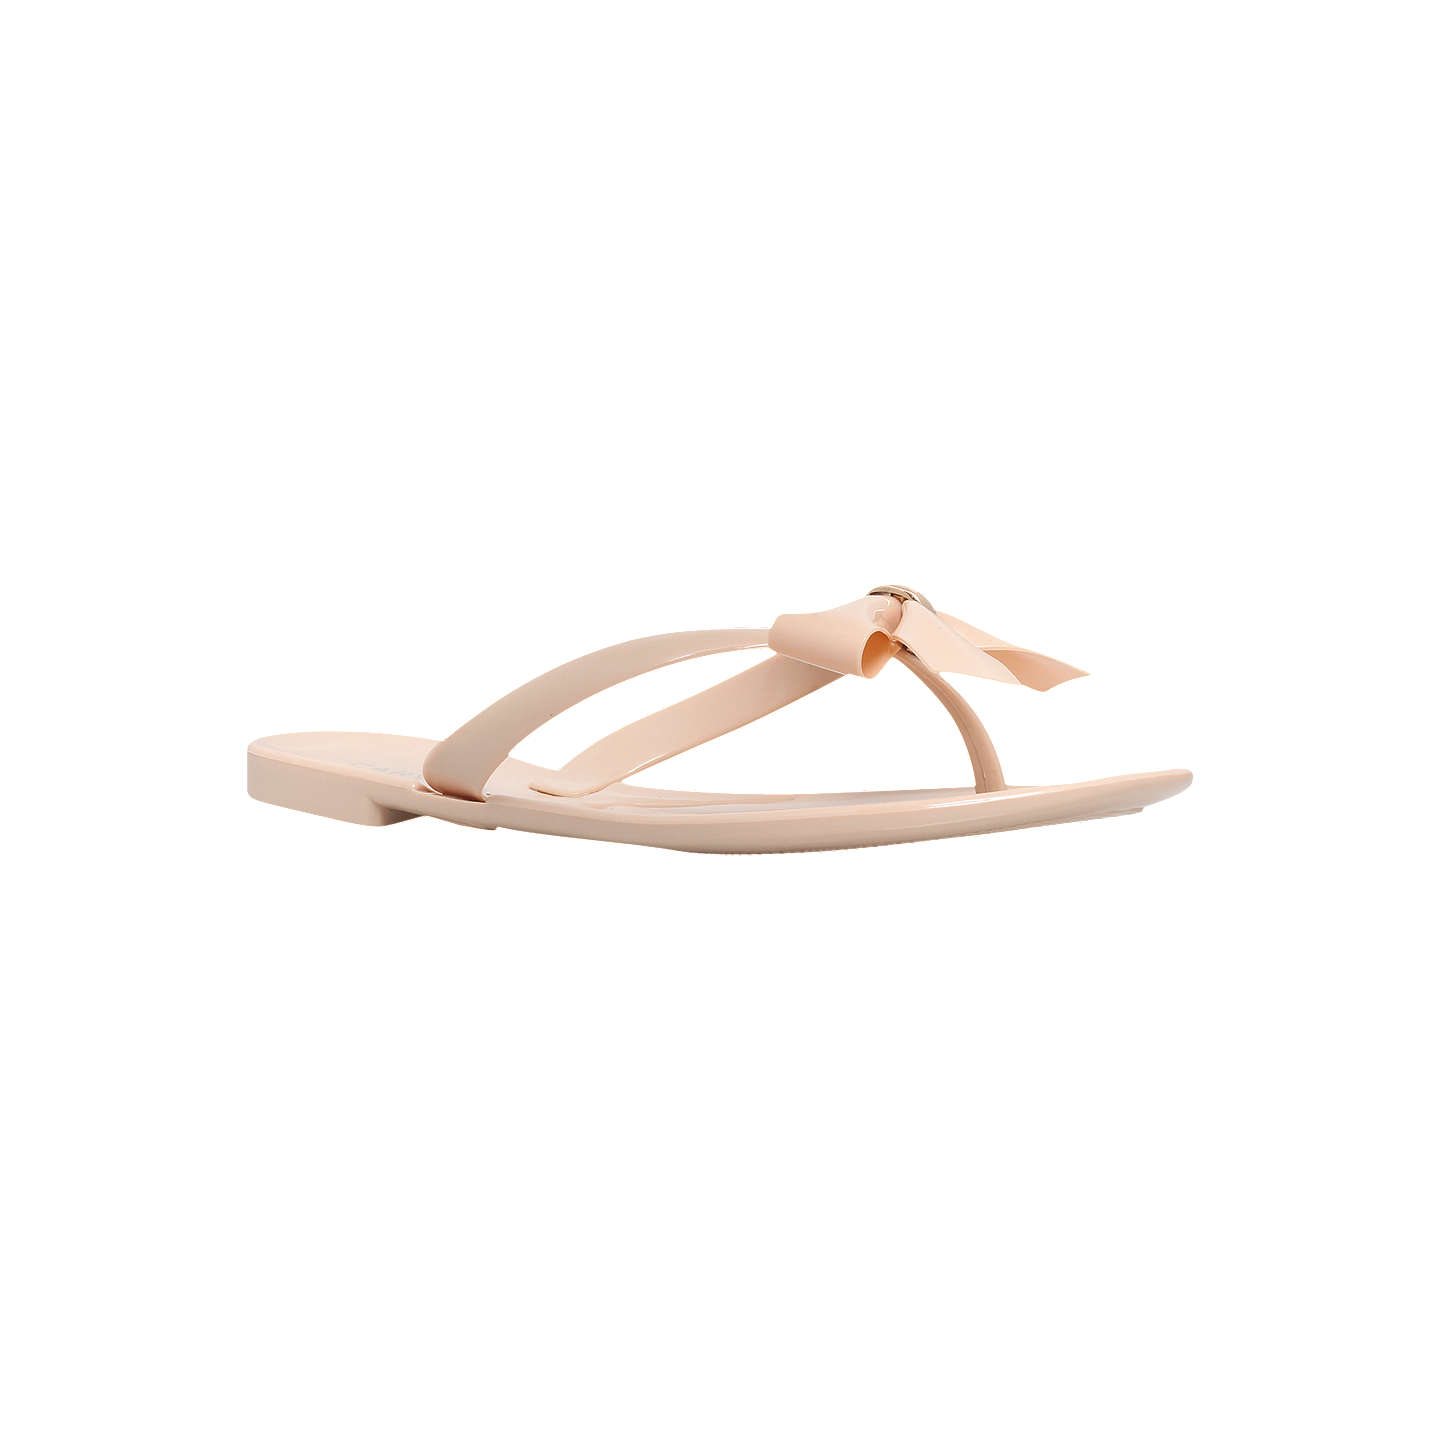 Nude 'Star' flat flip flops discount clearance purchase cheap price cheap new IViy3H